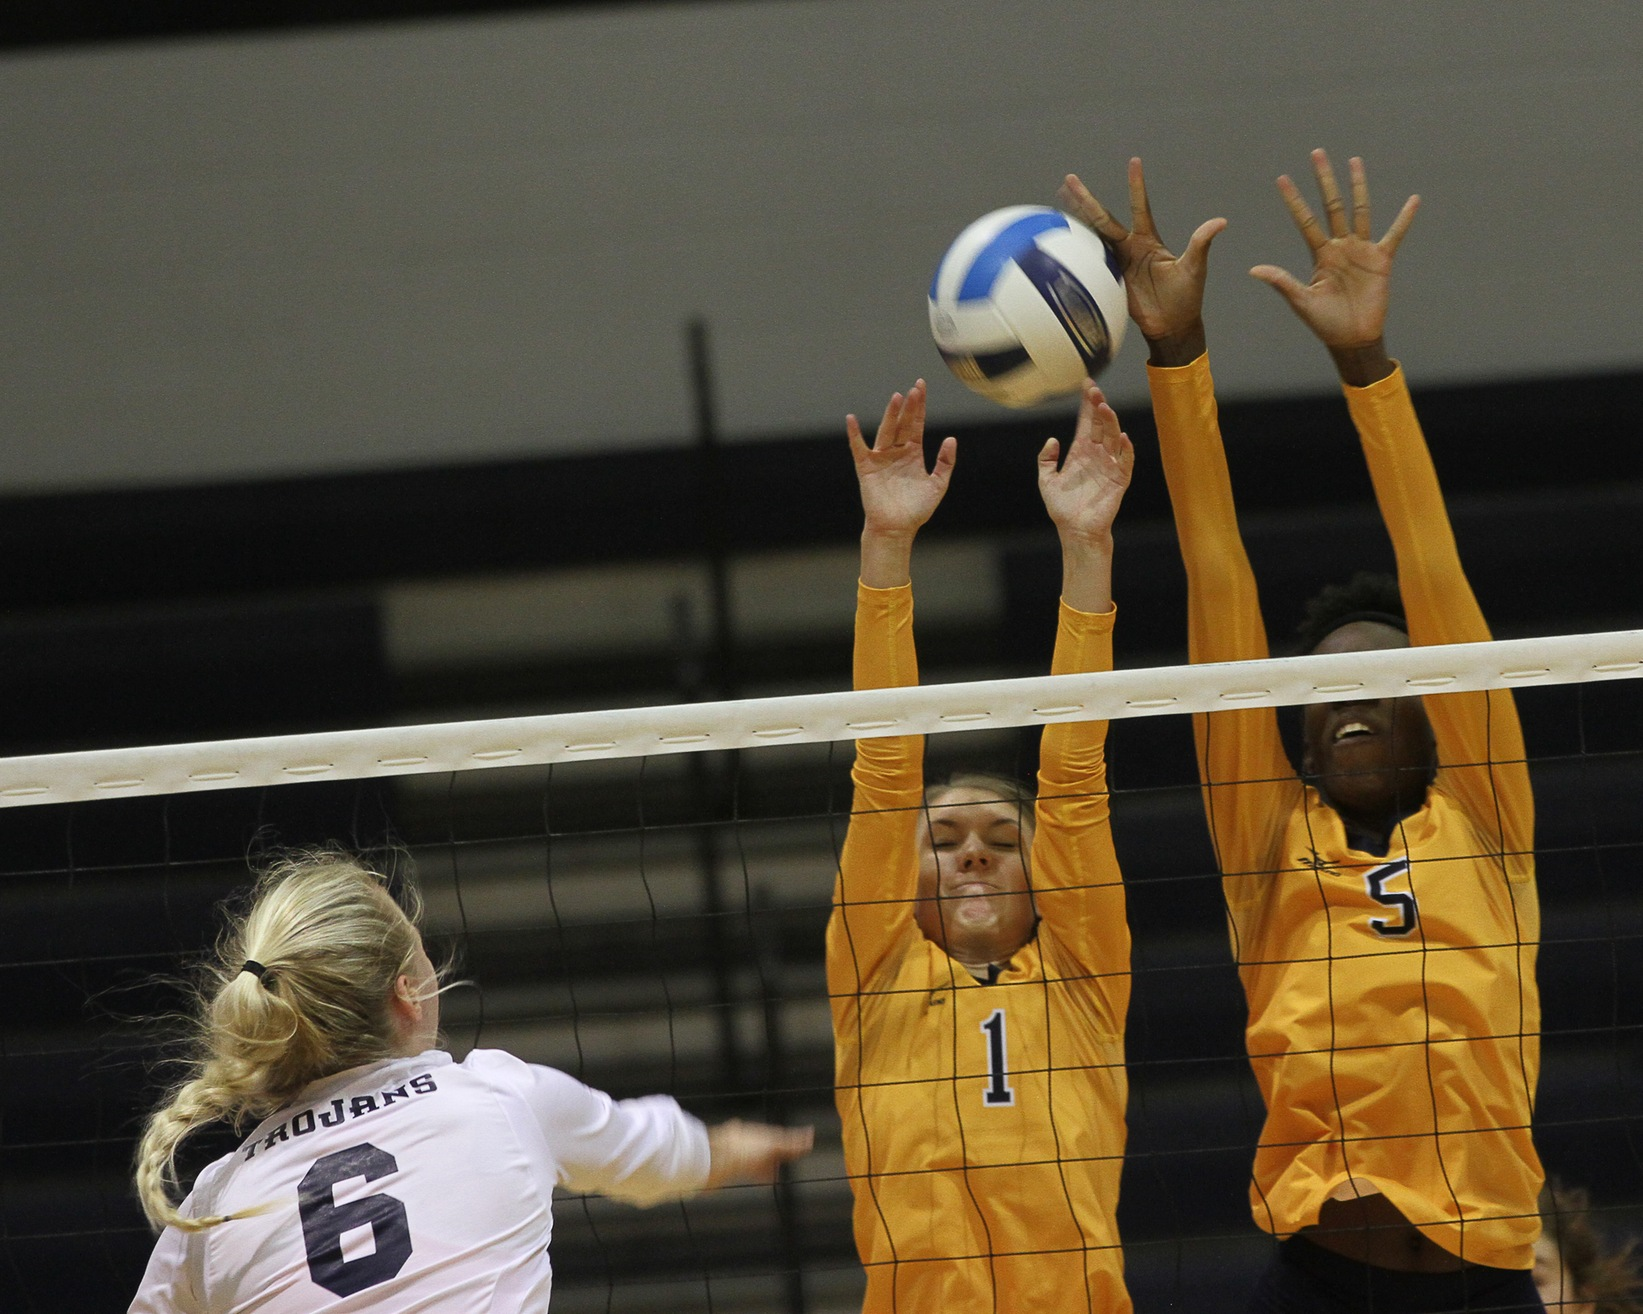 WNCC sweeps Trinidad for 17th straight victory